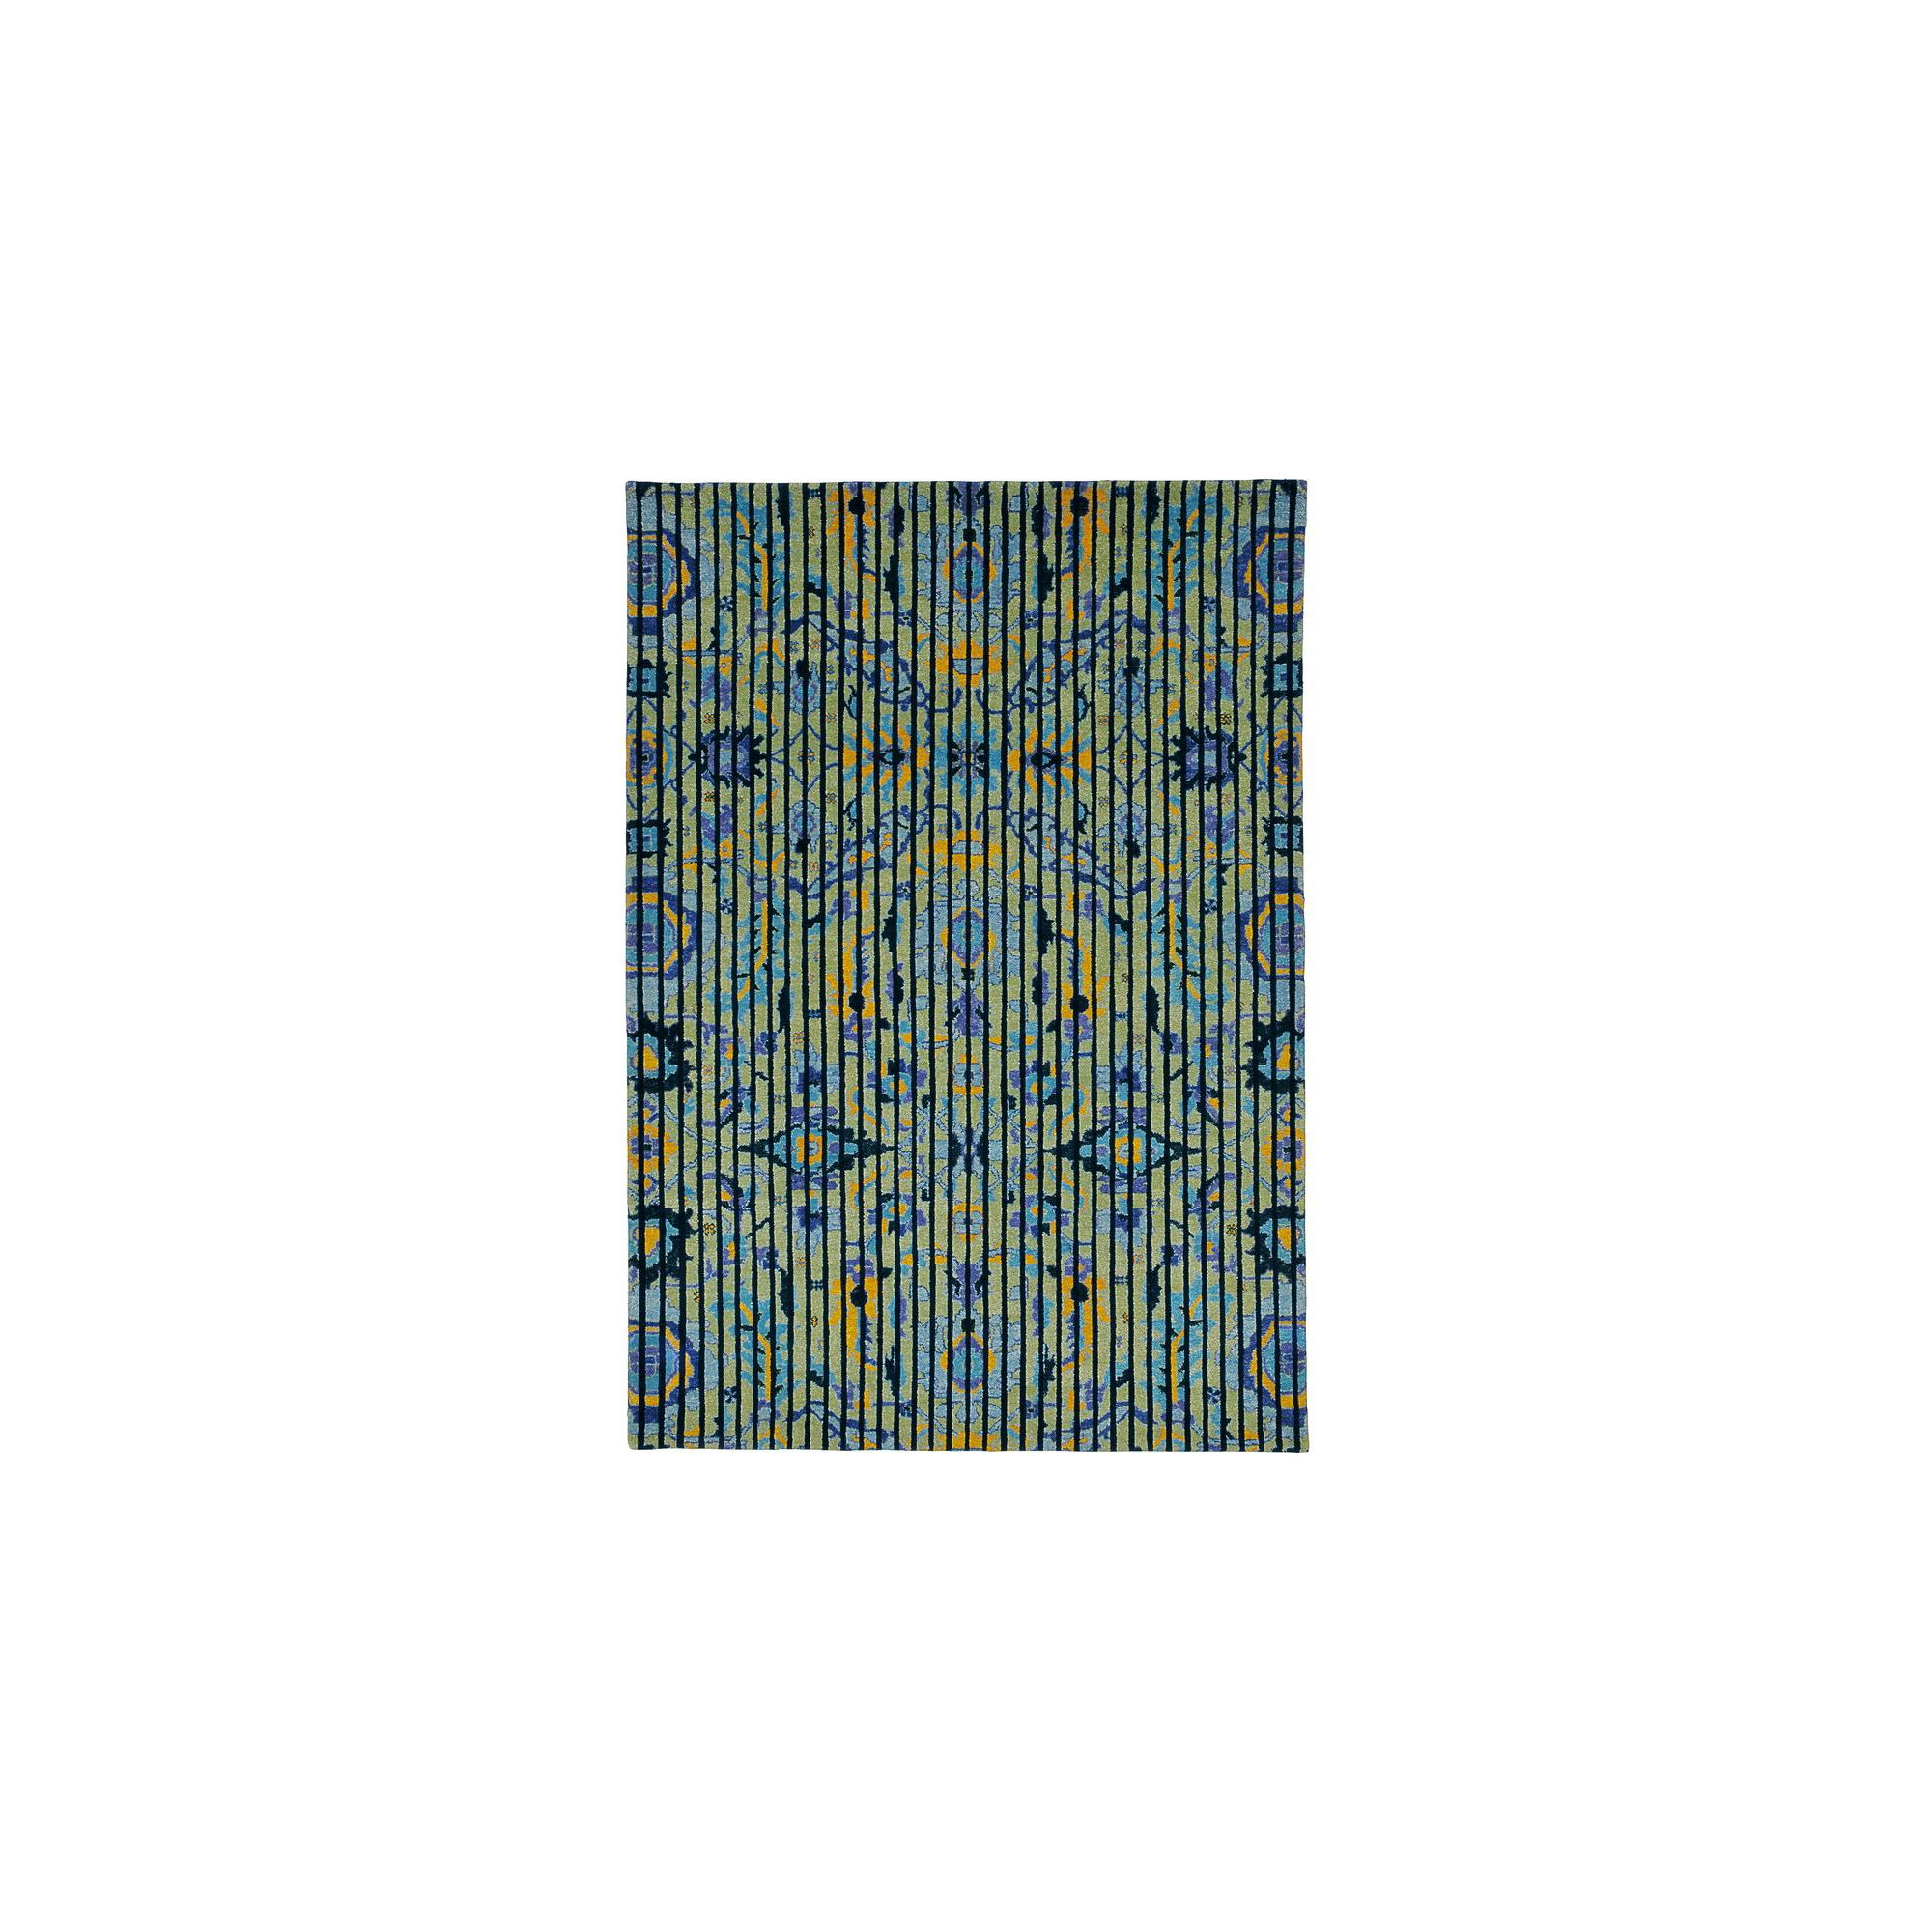 I + I Editions Persian Lines II Knotted Rug - 240cm x 170cm at Tesco Direct